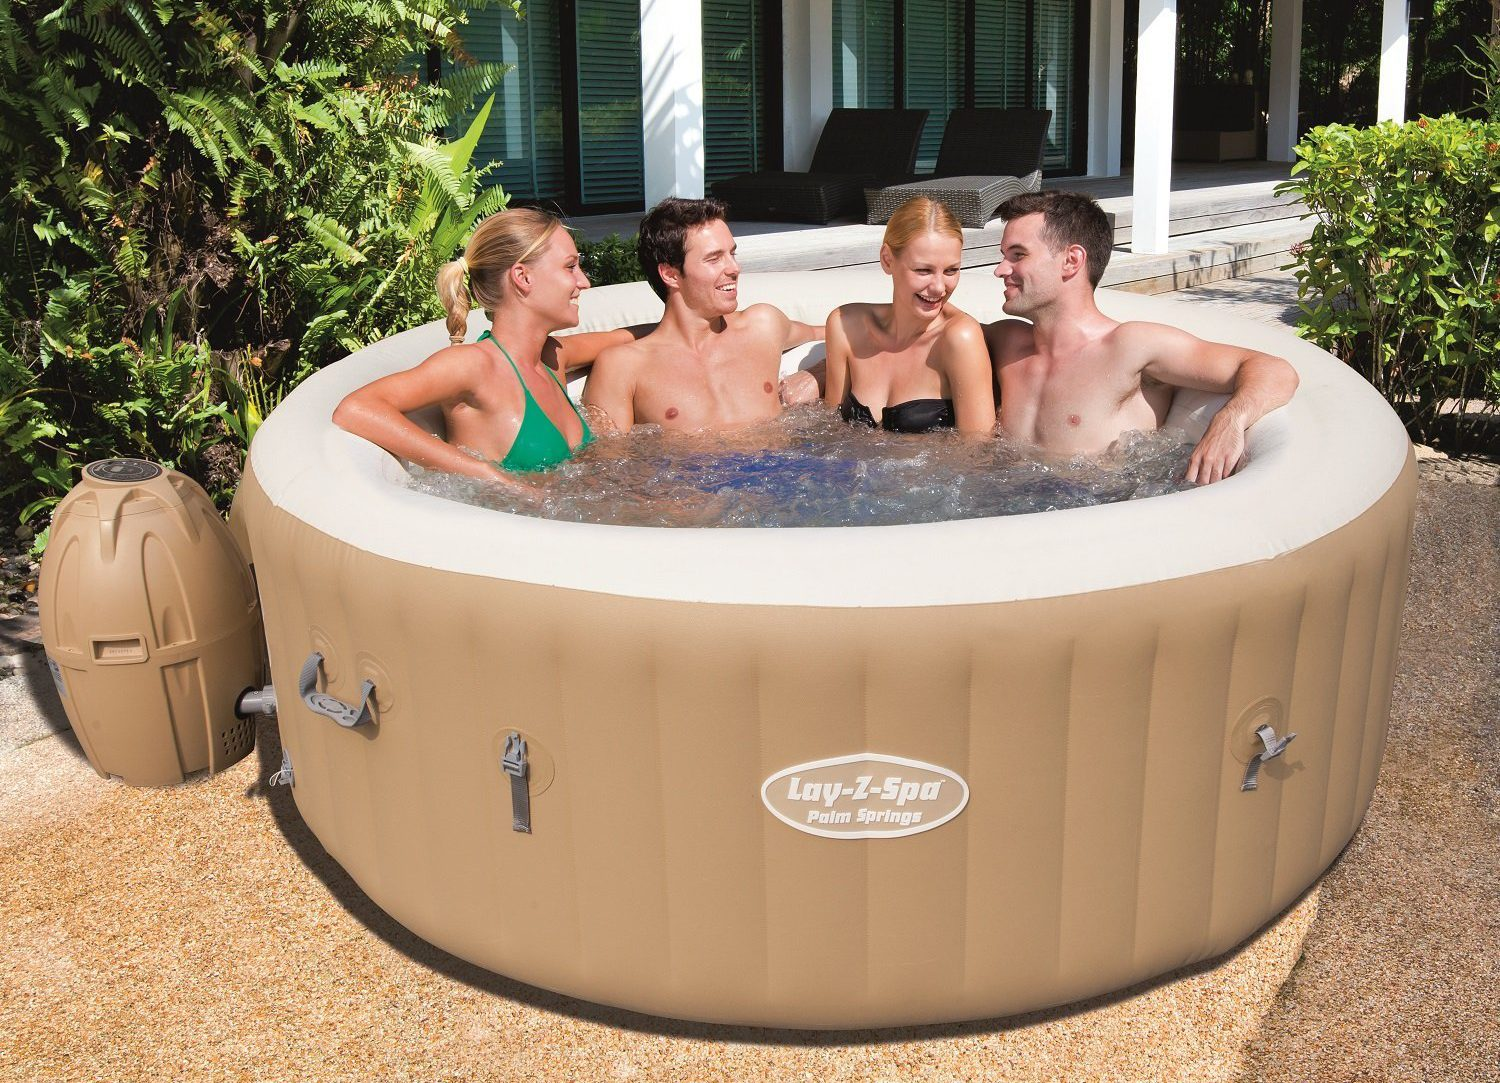 SaluSpa Palm Springs AirJet Inflatable Hot Tub Review – Laze Up!